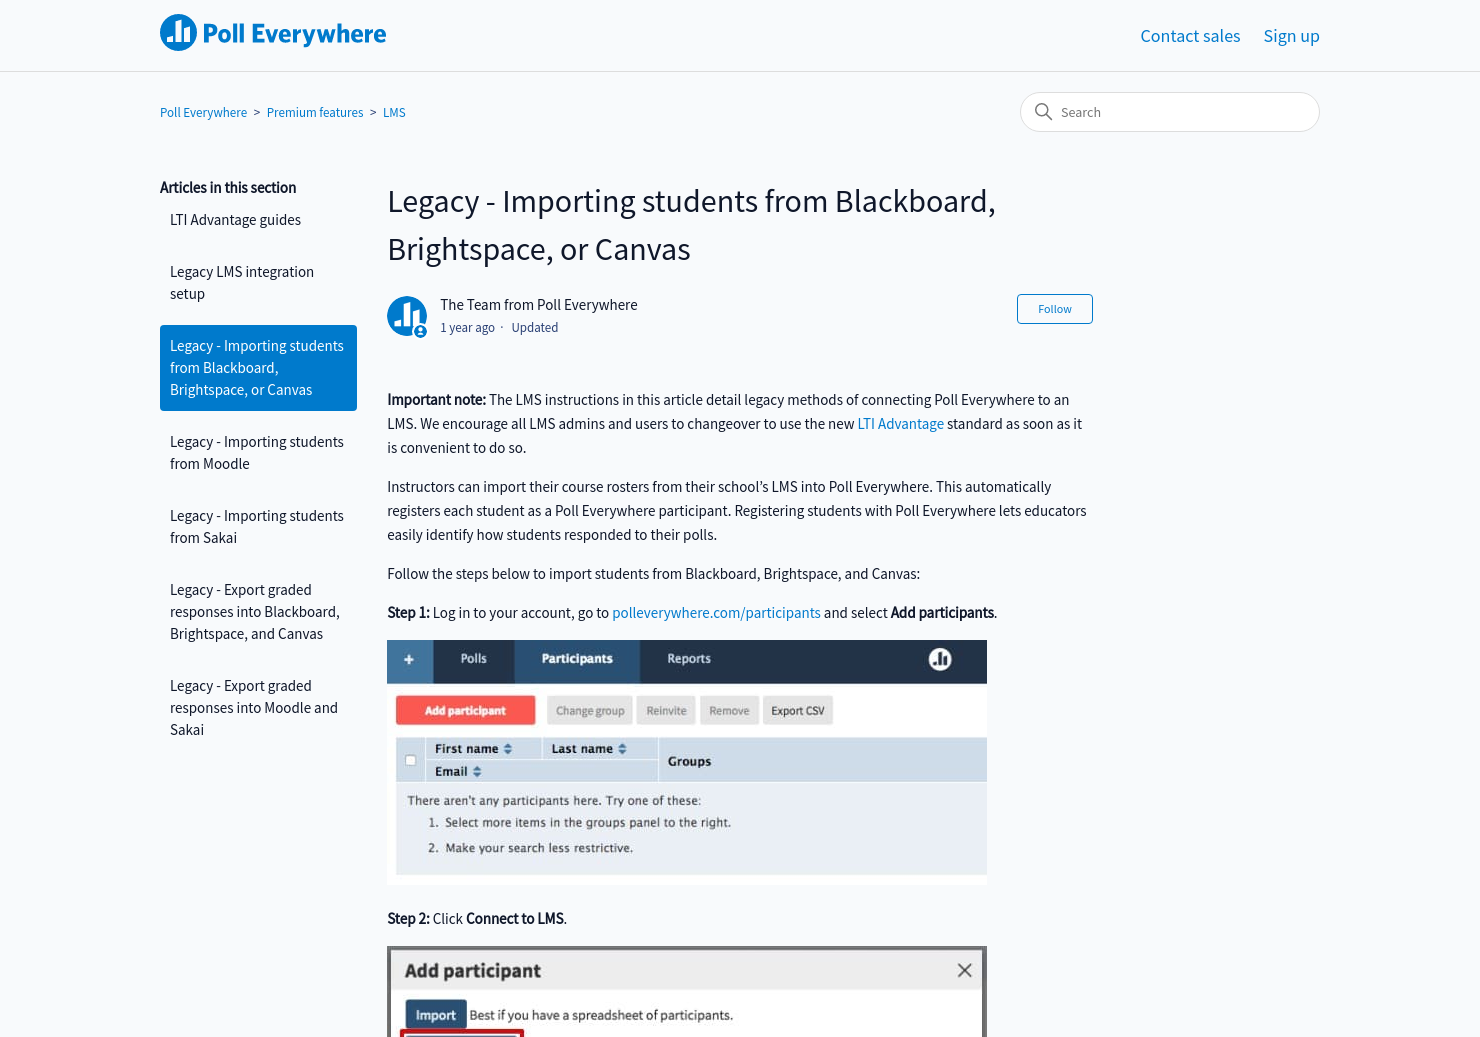 Importing students from Blackboard, Brightspace, or Canvas